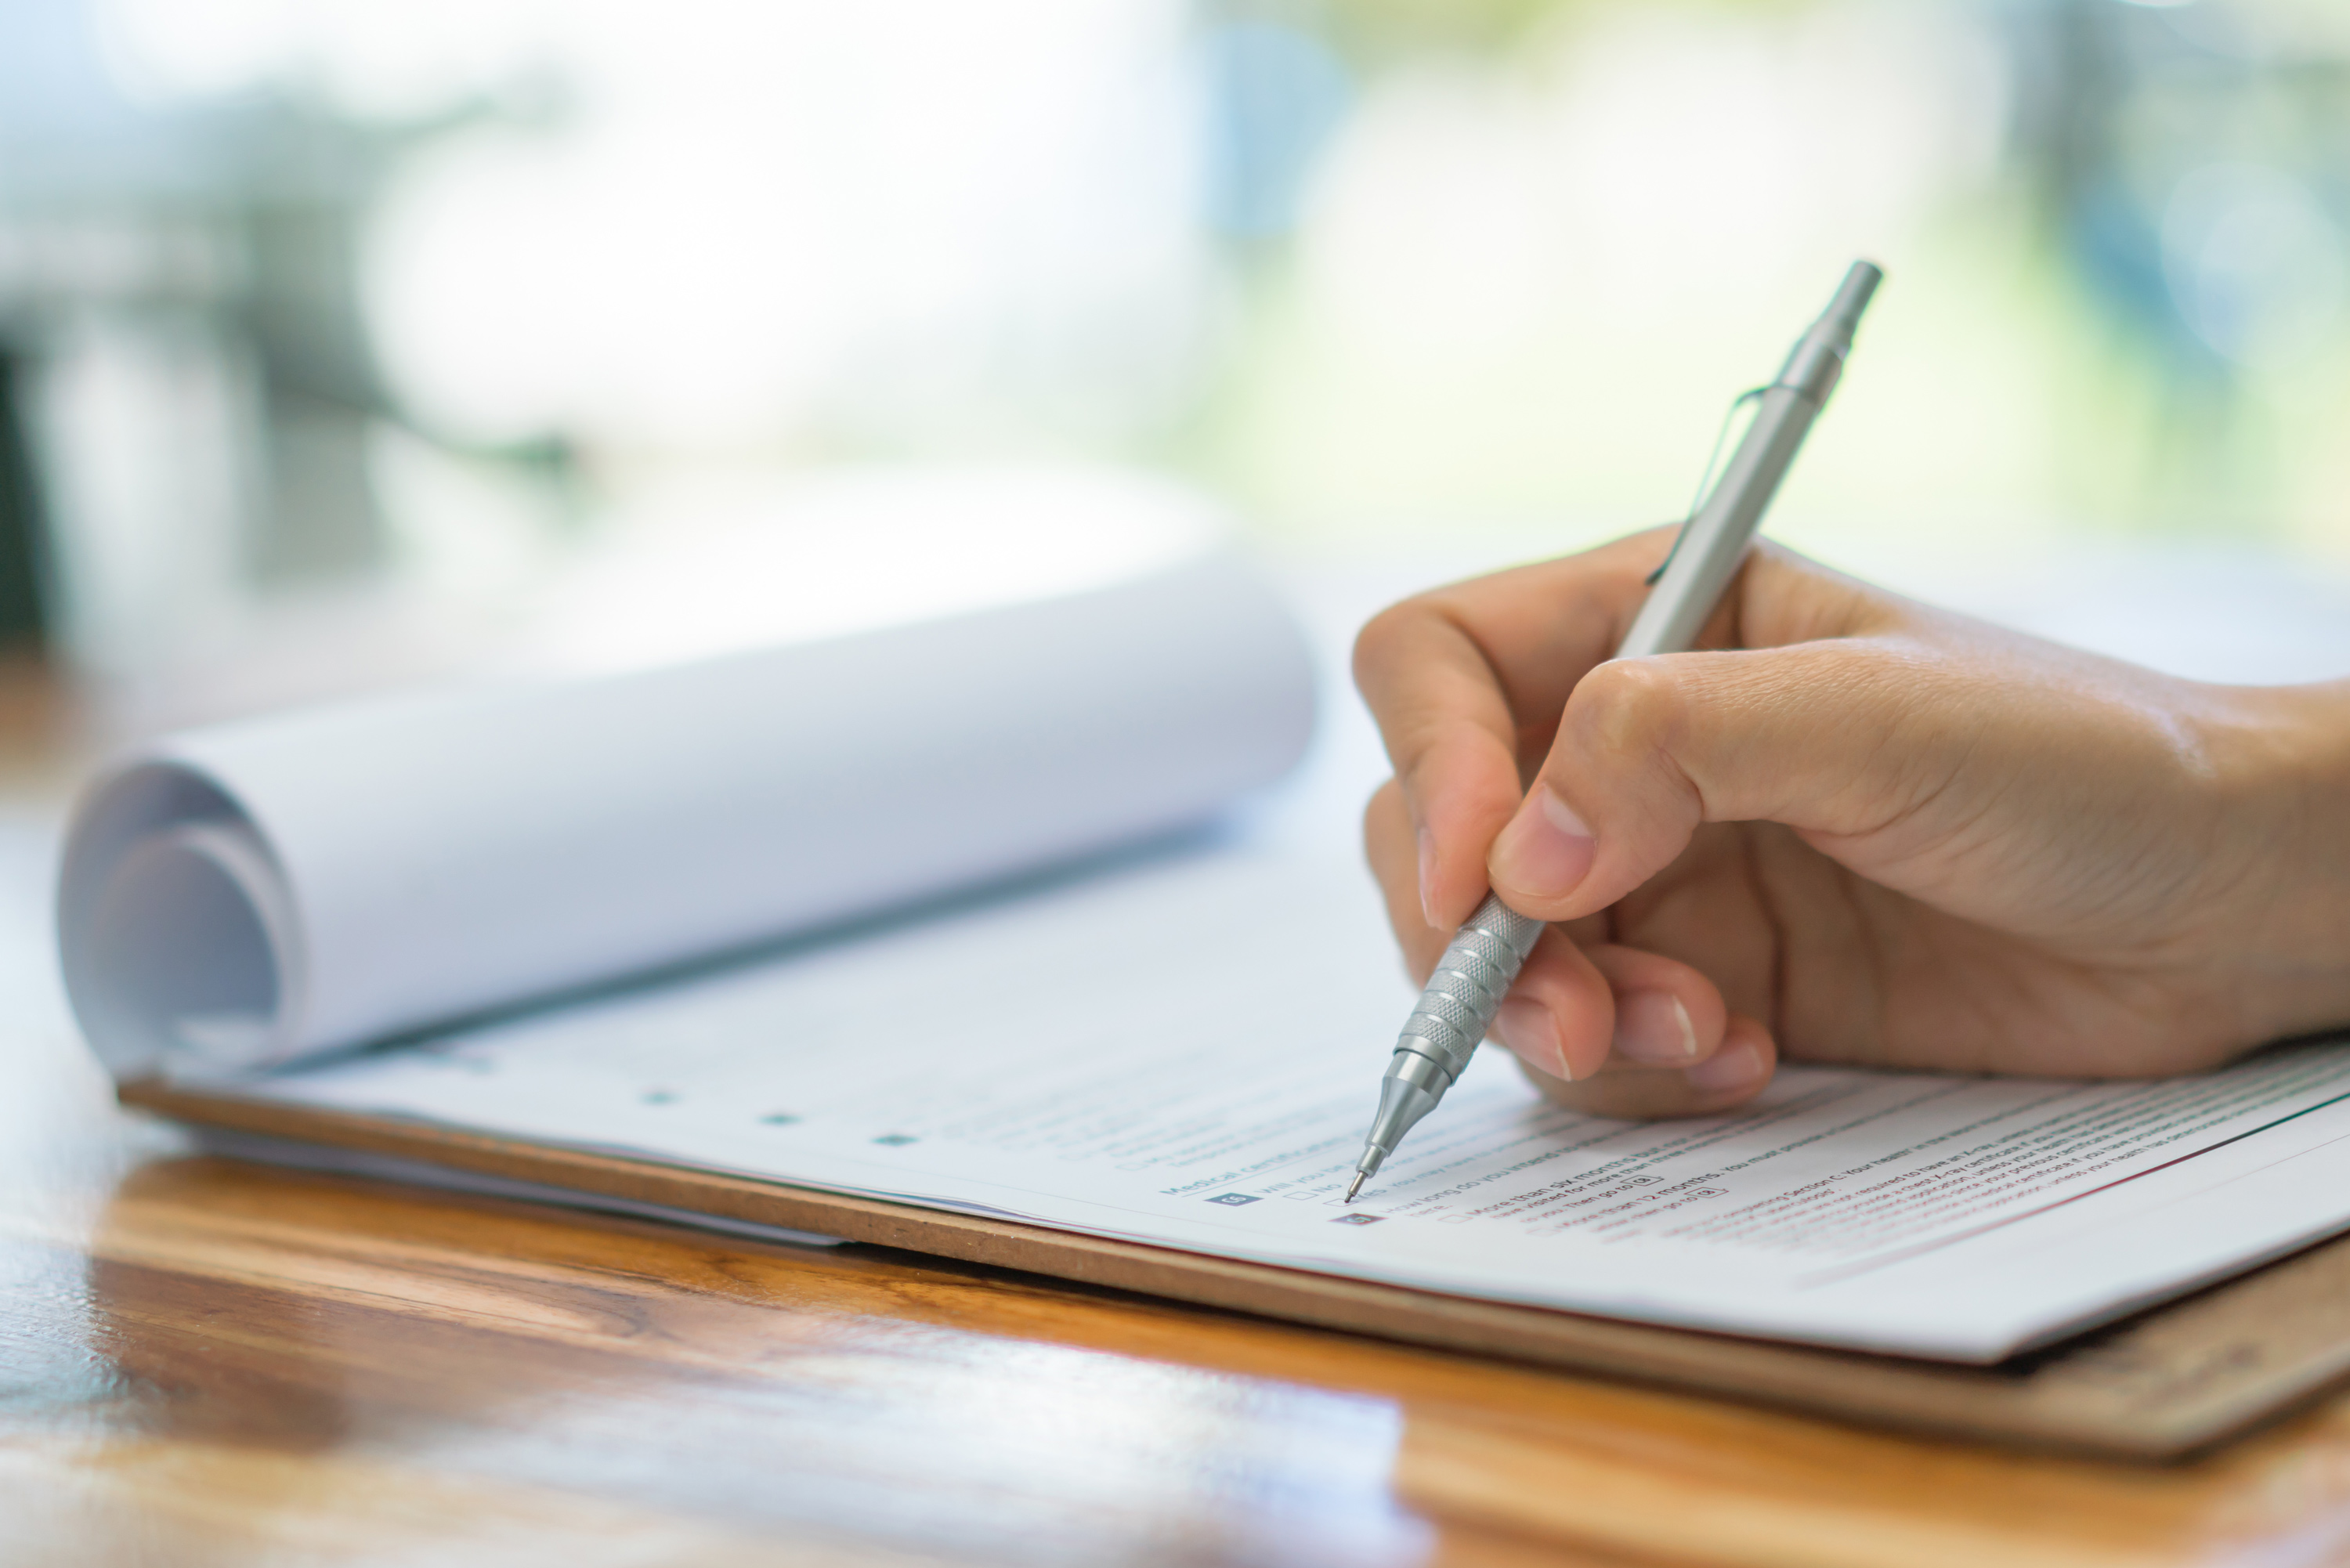 A close-up of hand writing on a notepad